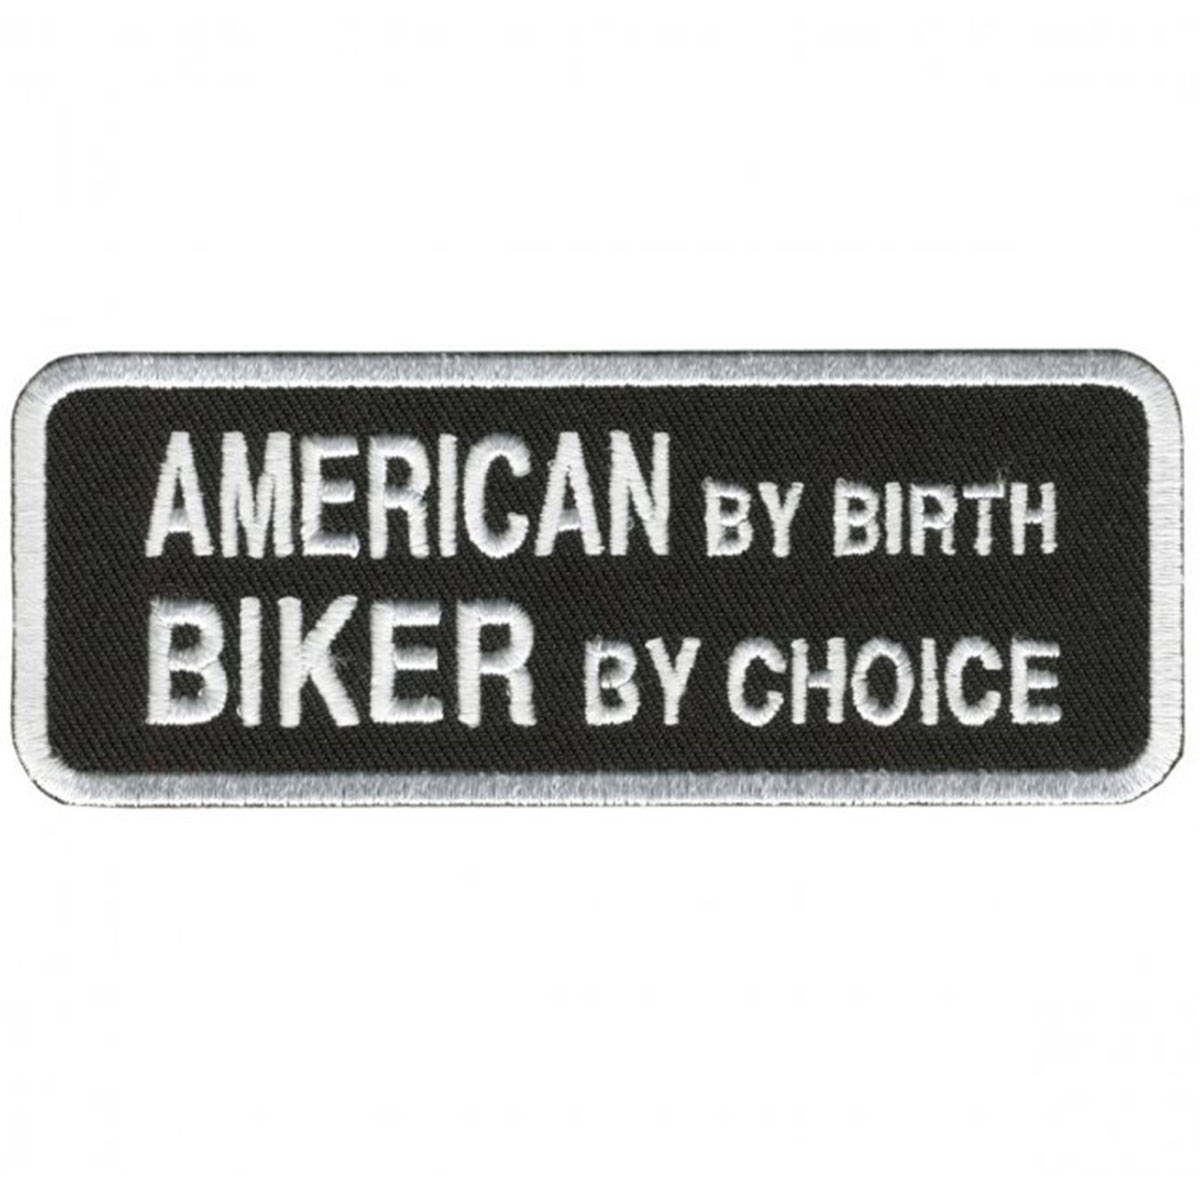 American By Birth Biker By Choice Embroidered Patch